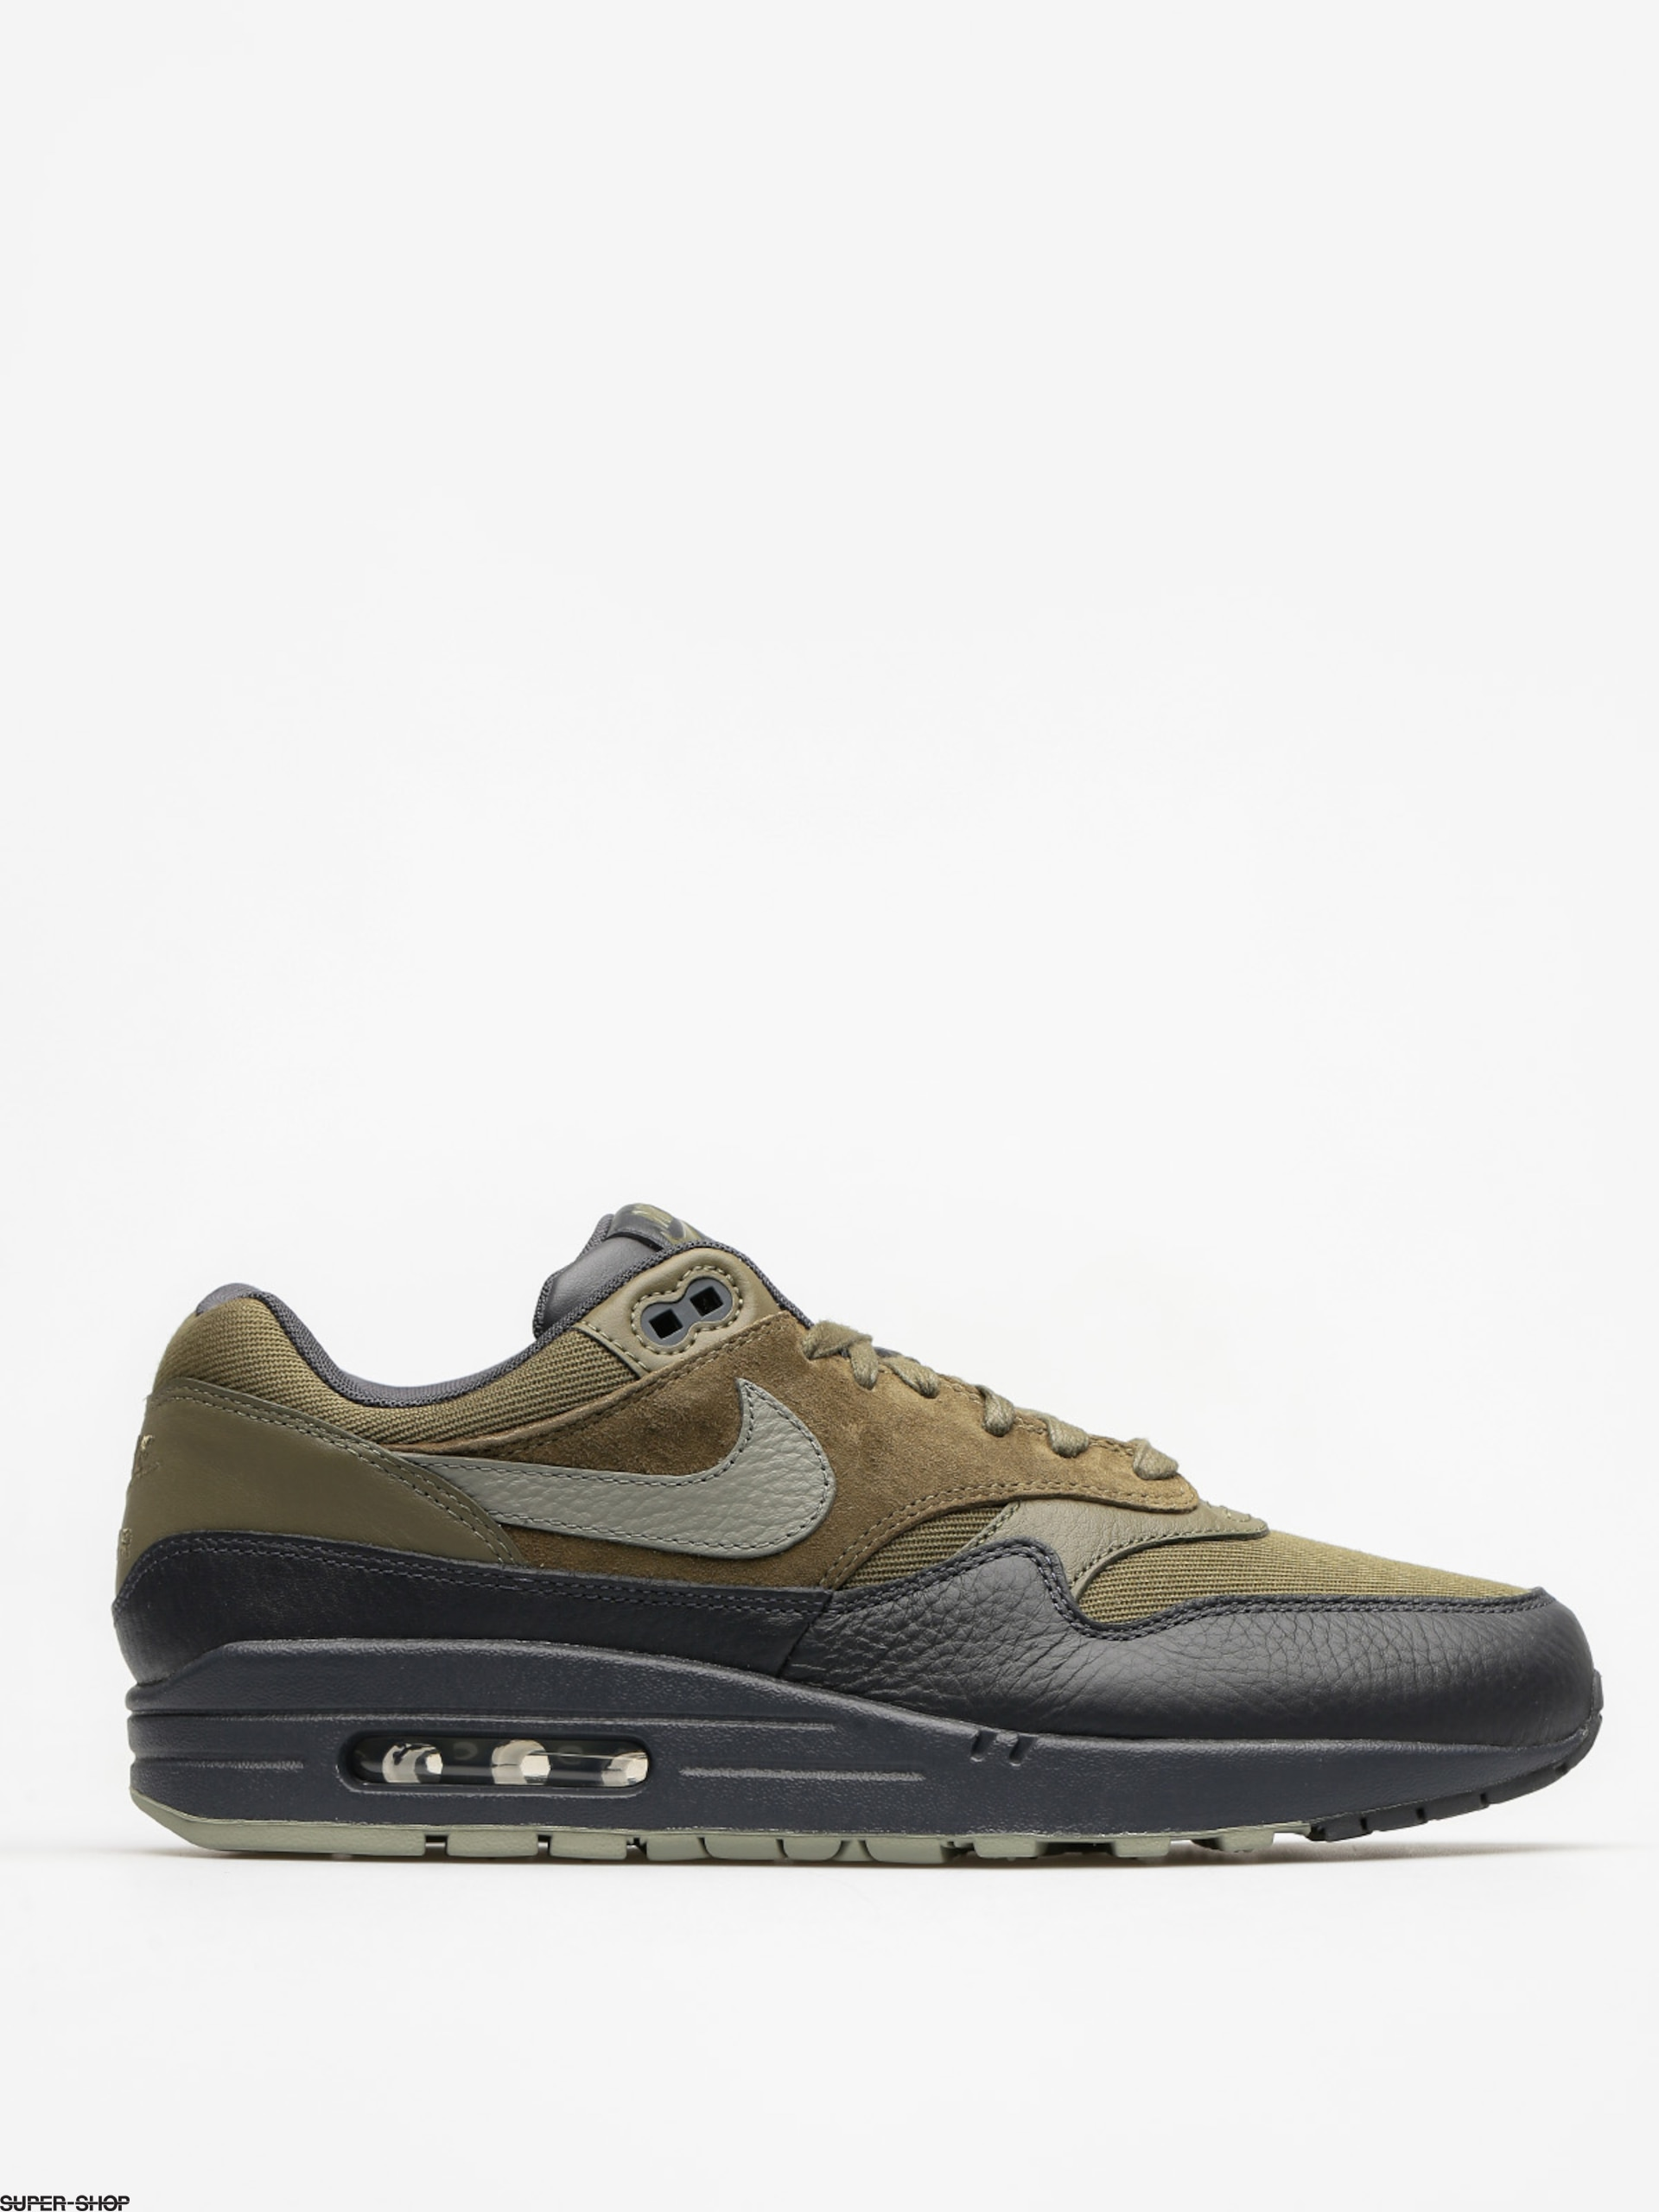 Nike Schuhe Air Max 1 (Premium medium olive/dark stucco anthracite)